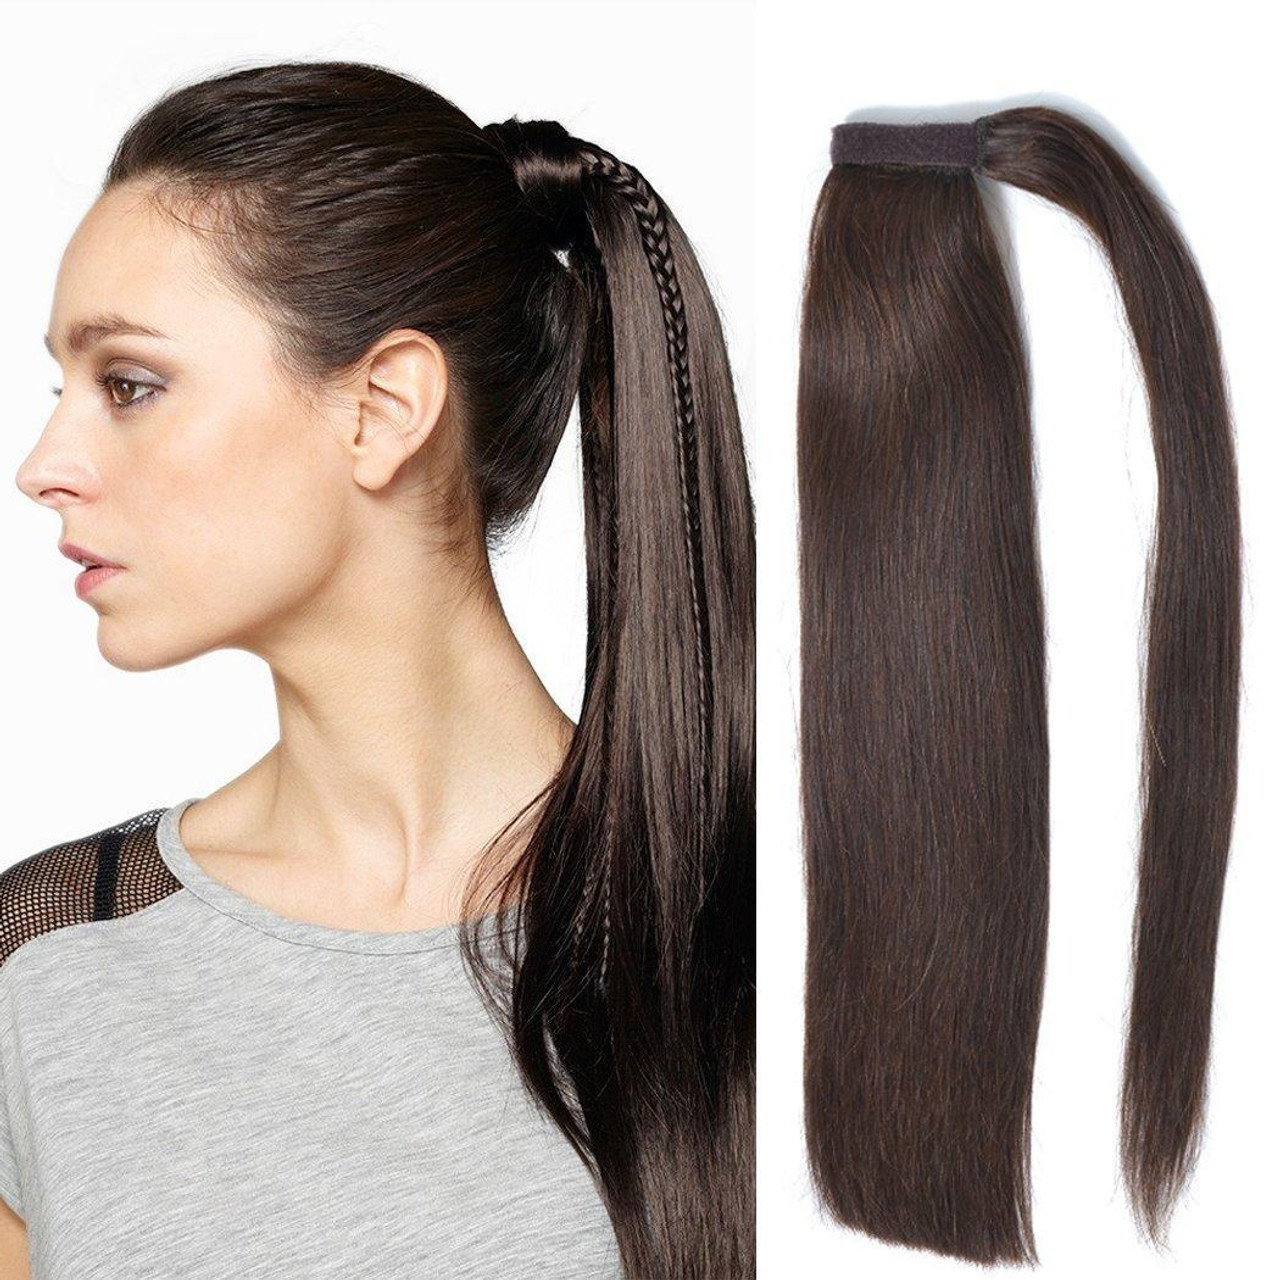 Remeehi 100 Real Human Hair Straight Wrap Around Ponytail Extension For Woman 85g 15